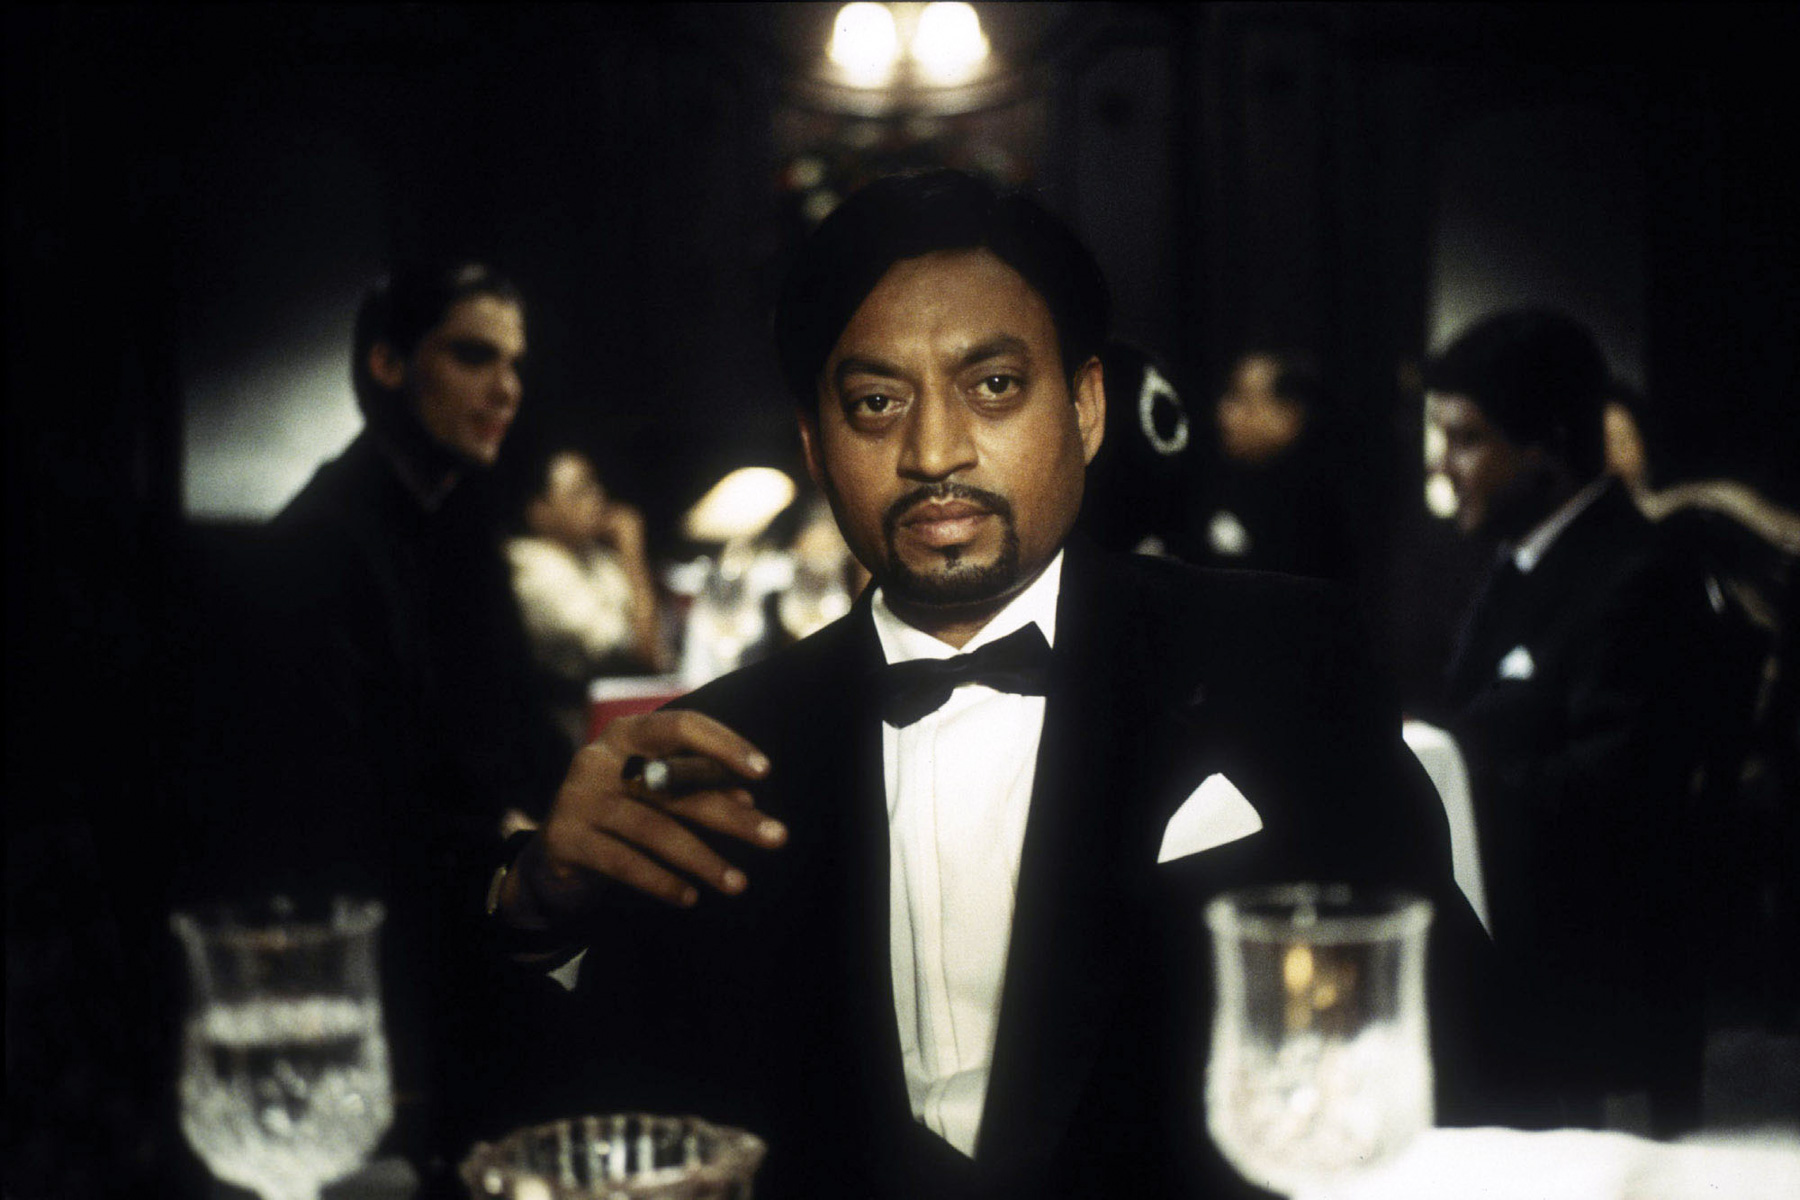 2004: Irrfan Khan as Yani in Shadows of Time, director Florian Gallenberger's first feature-length film. (Still from Shadows of Time)